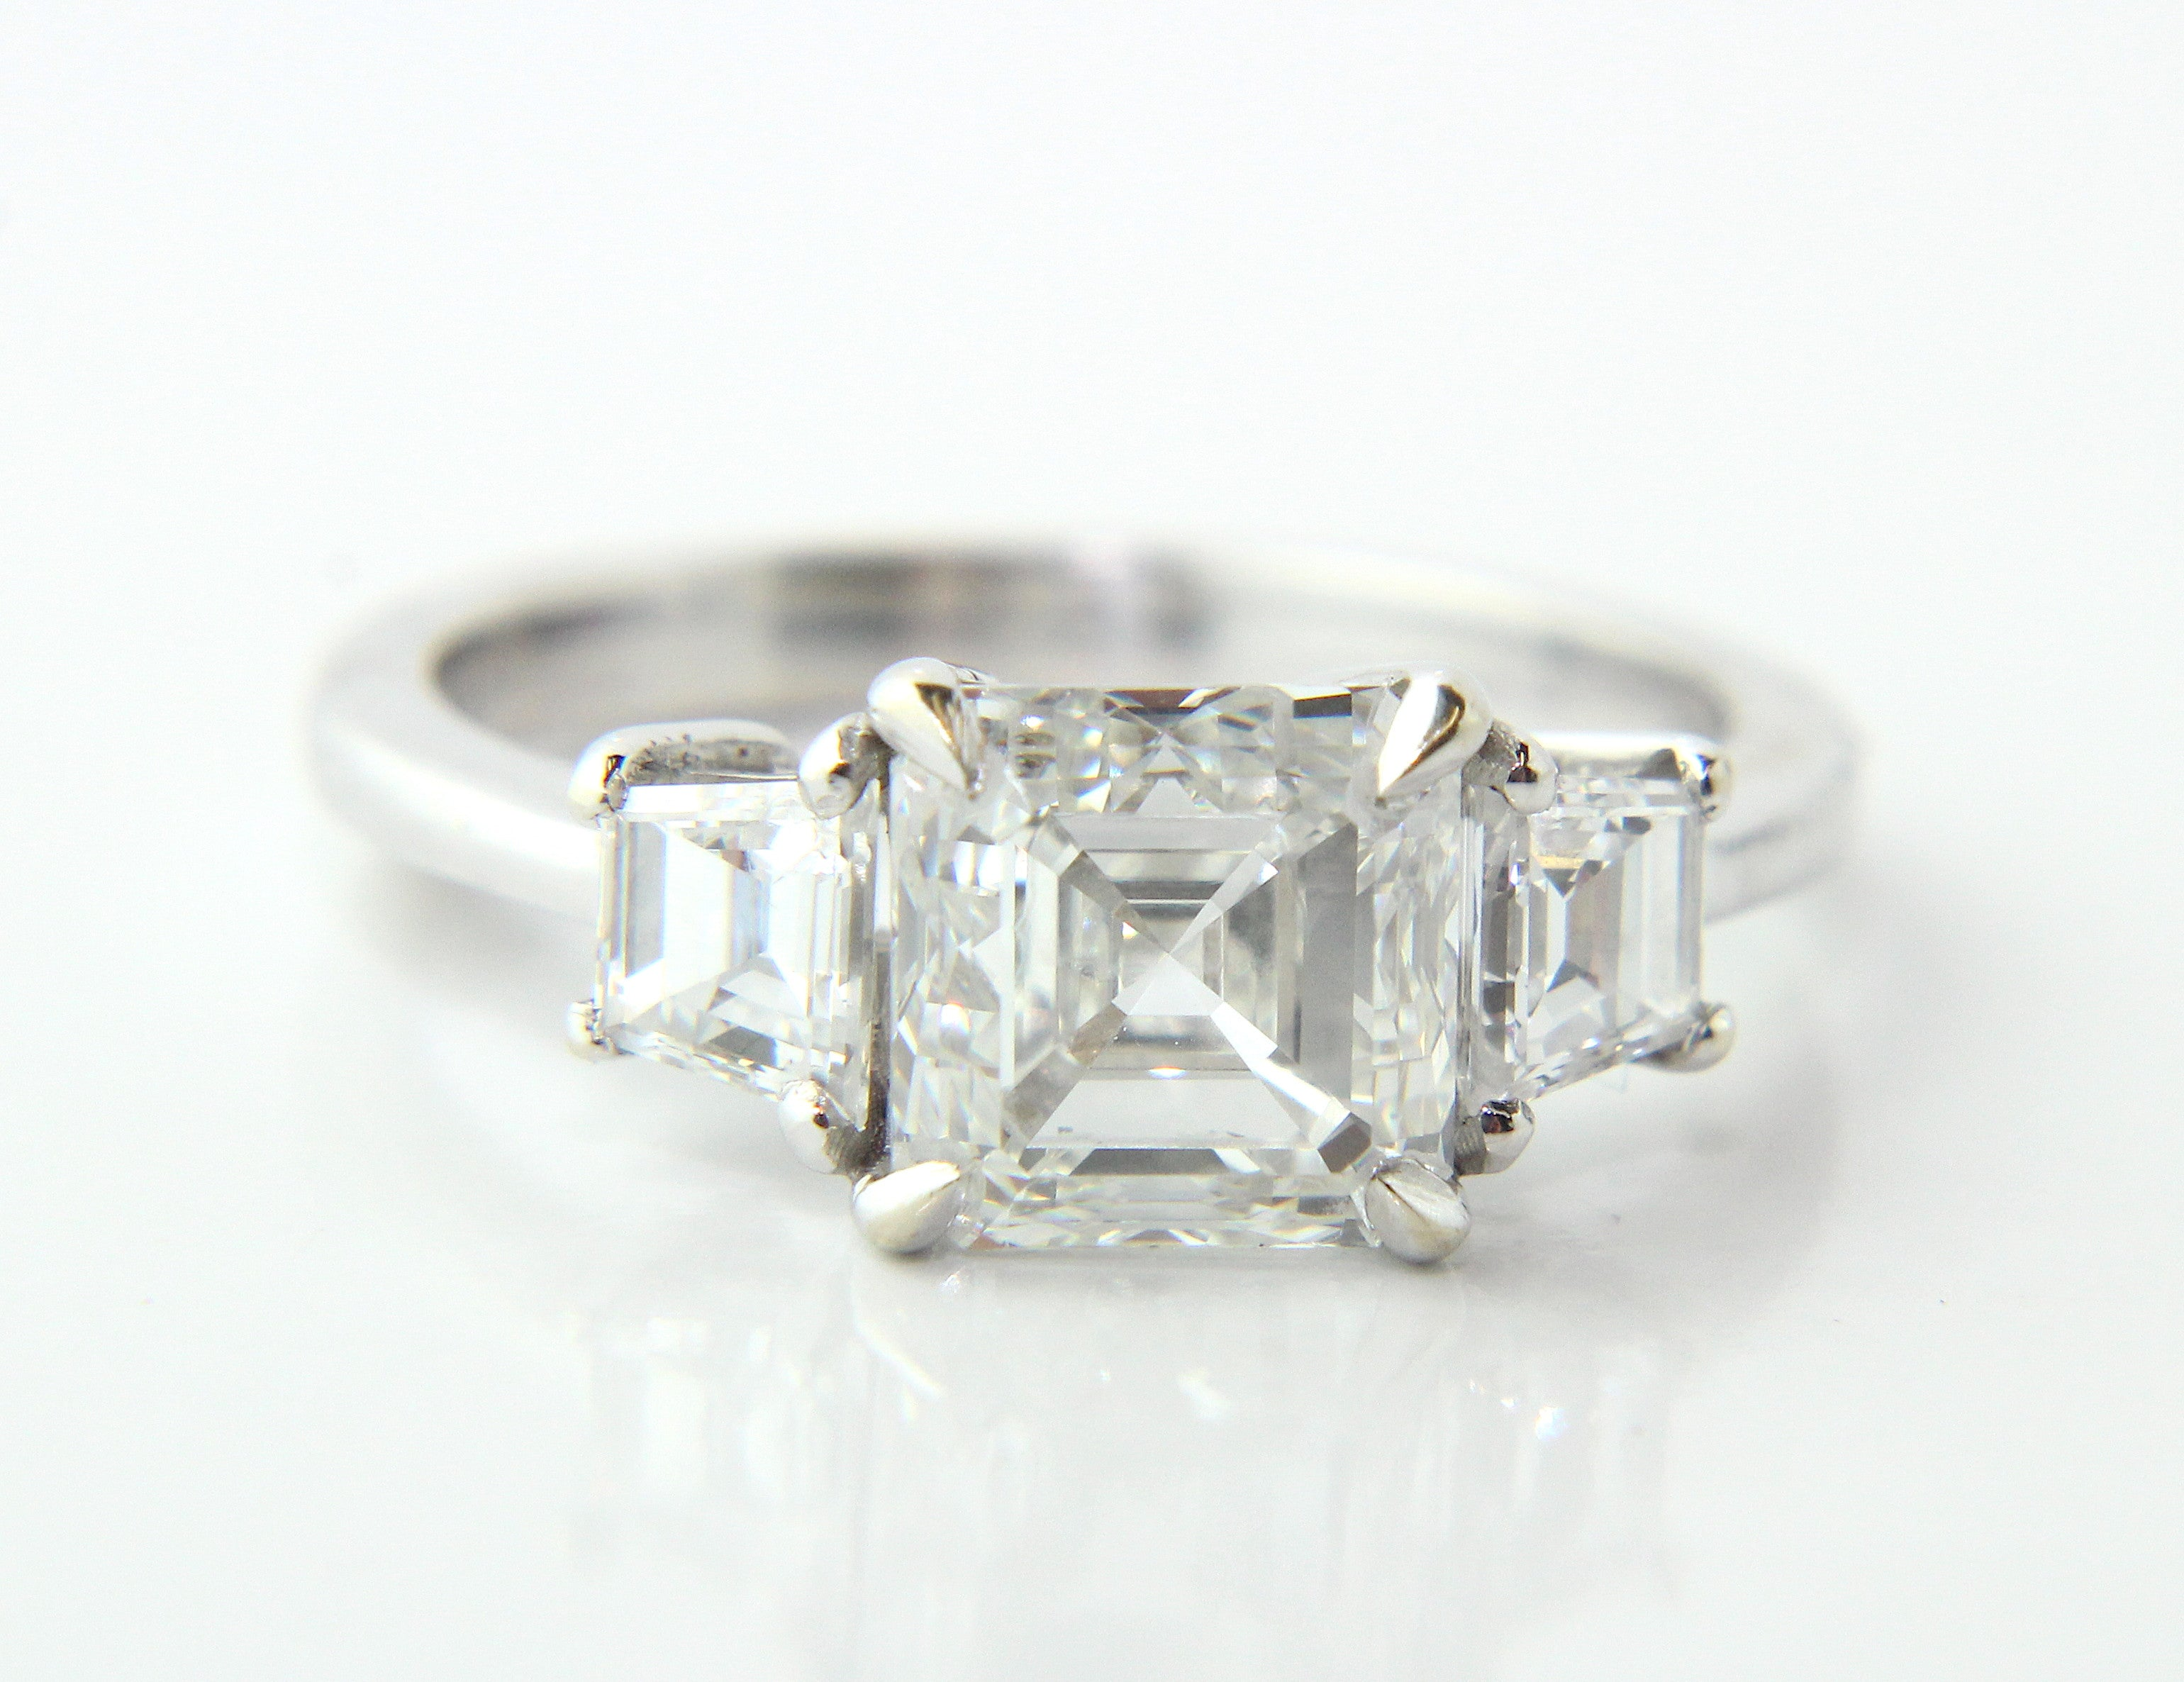 flat asscher diamond cut white a g created lab gold ring rings jewellery classic engagement with